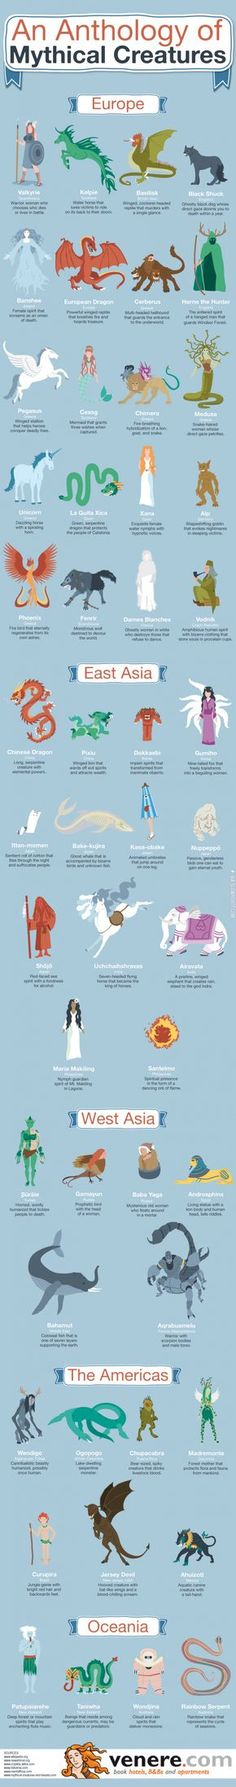 An anthology of mythical creatures.